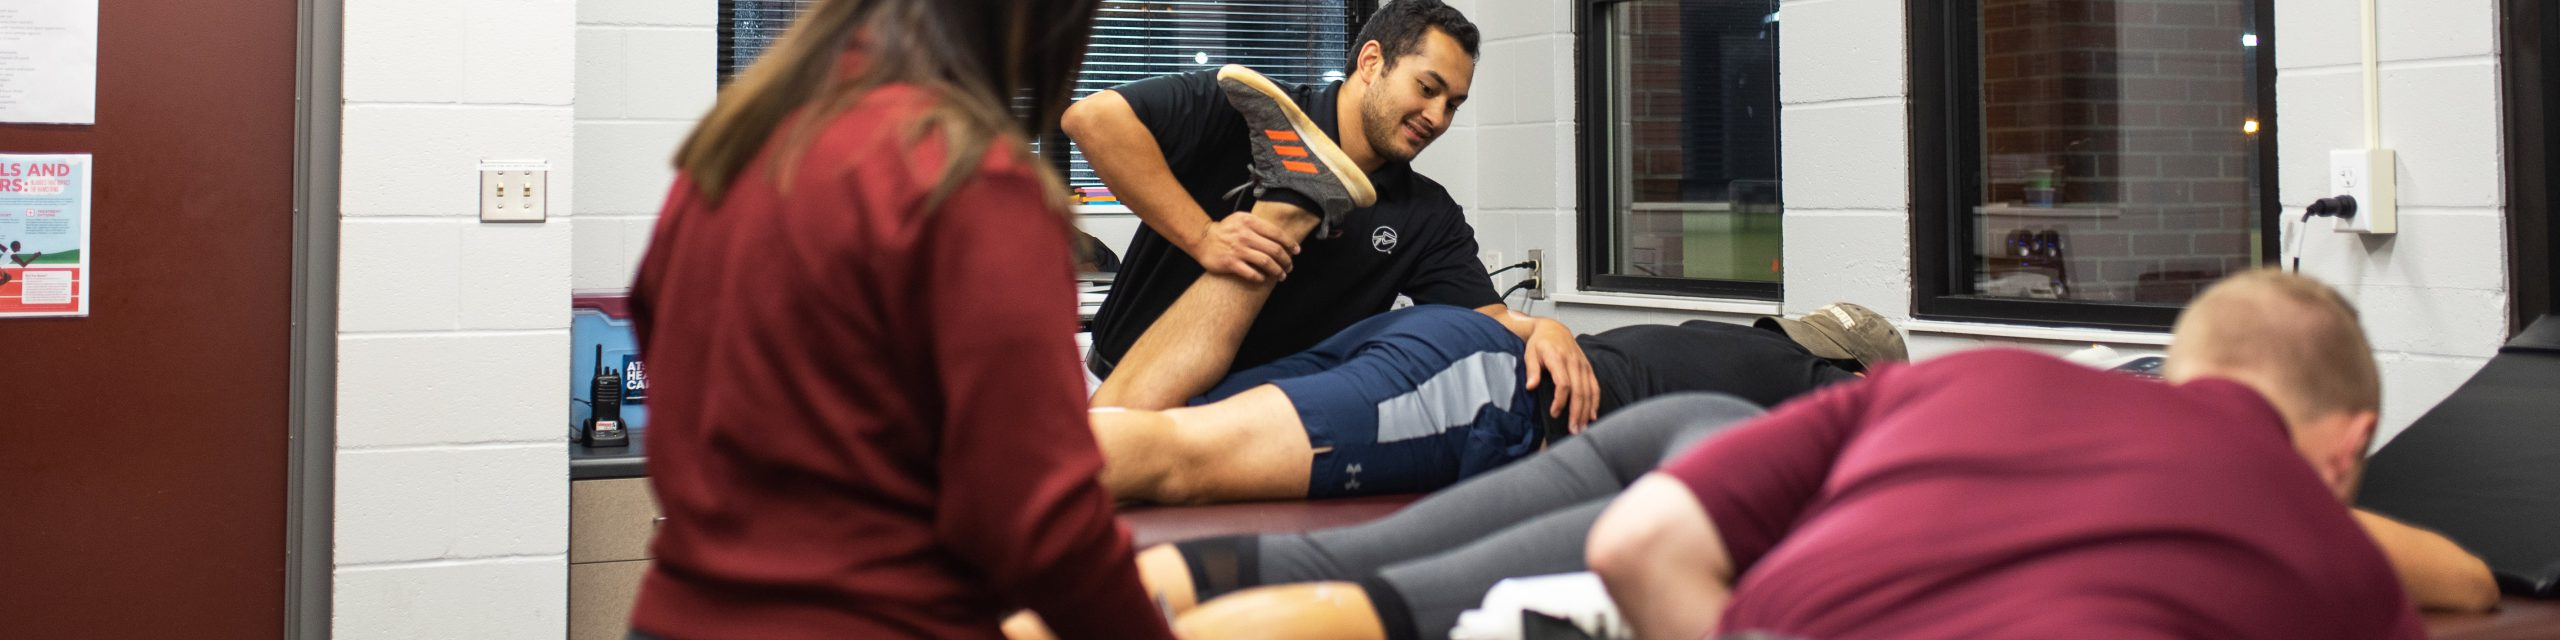 An athletic trainer helping a person with their leg